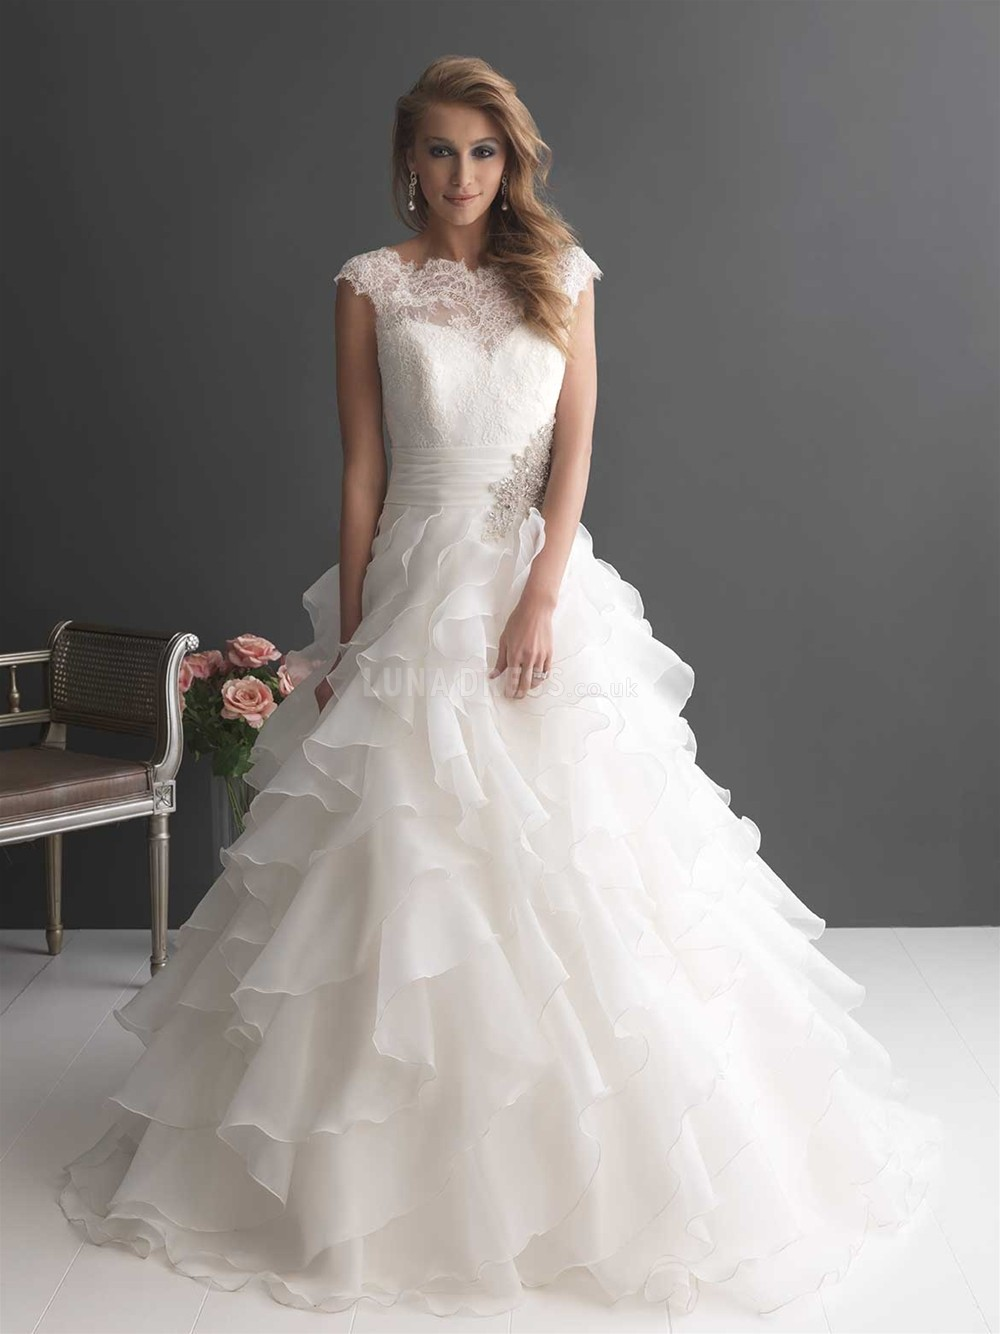 ball gown wedding dress for pregnant bride